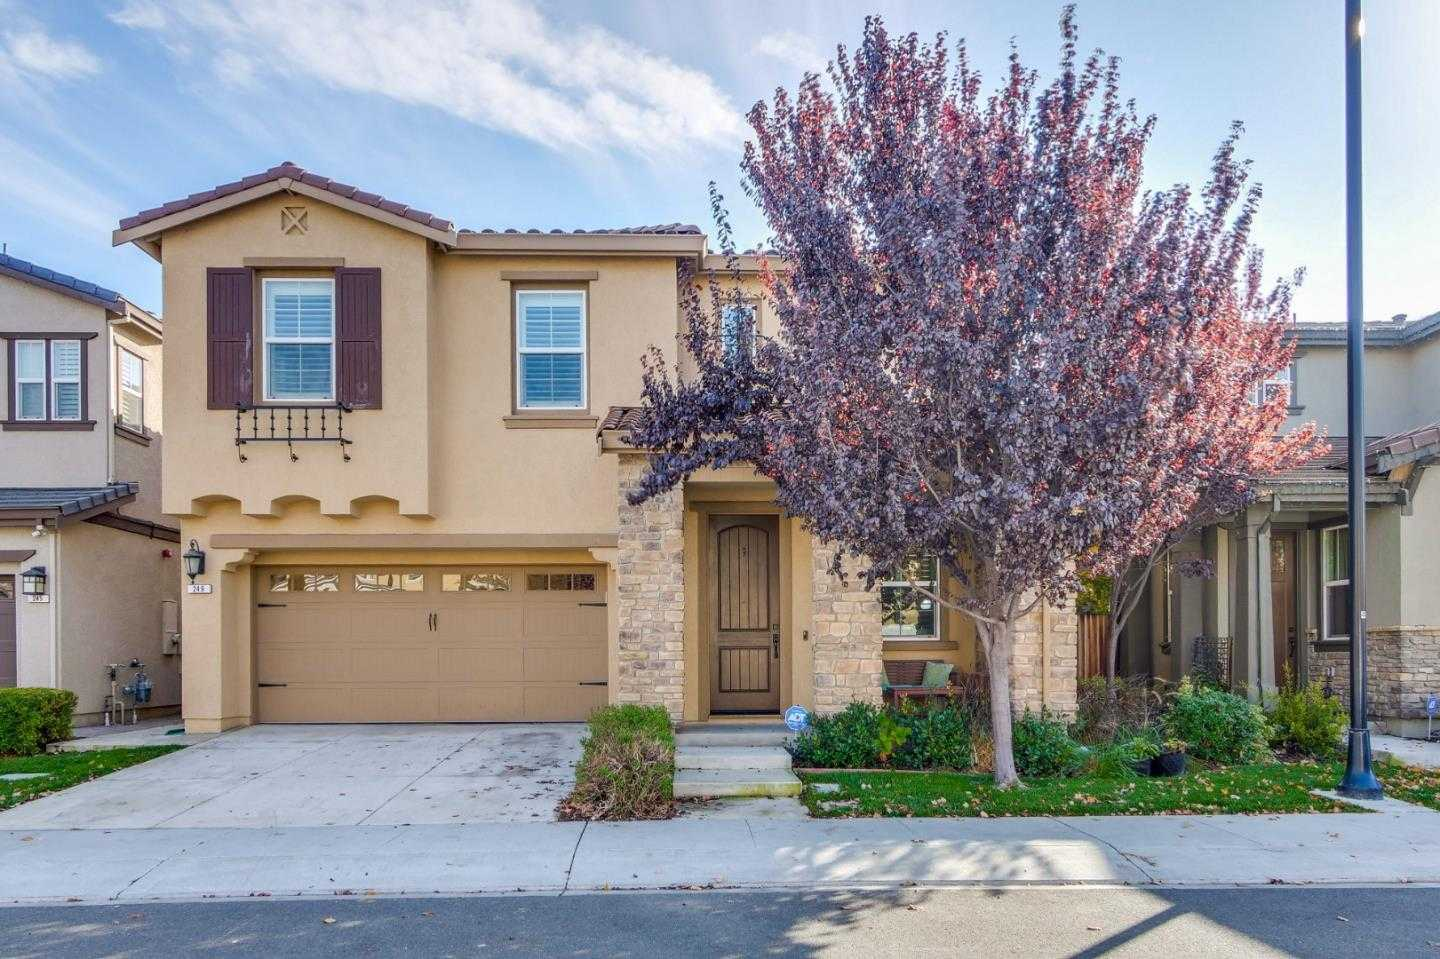 $1,588,888 - 4Br/3Ba -  for Sale in Milpitas